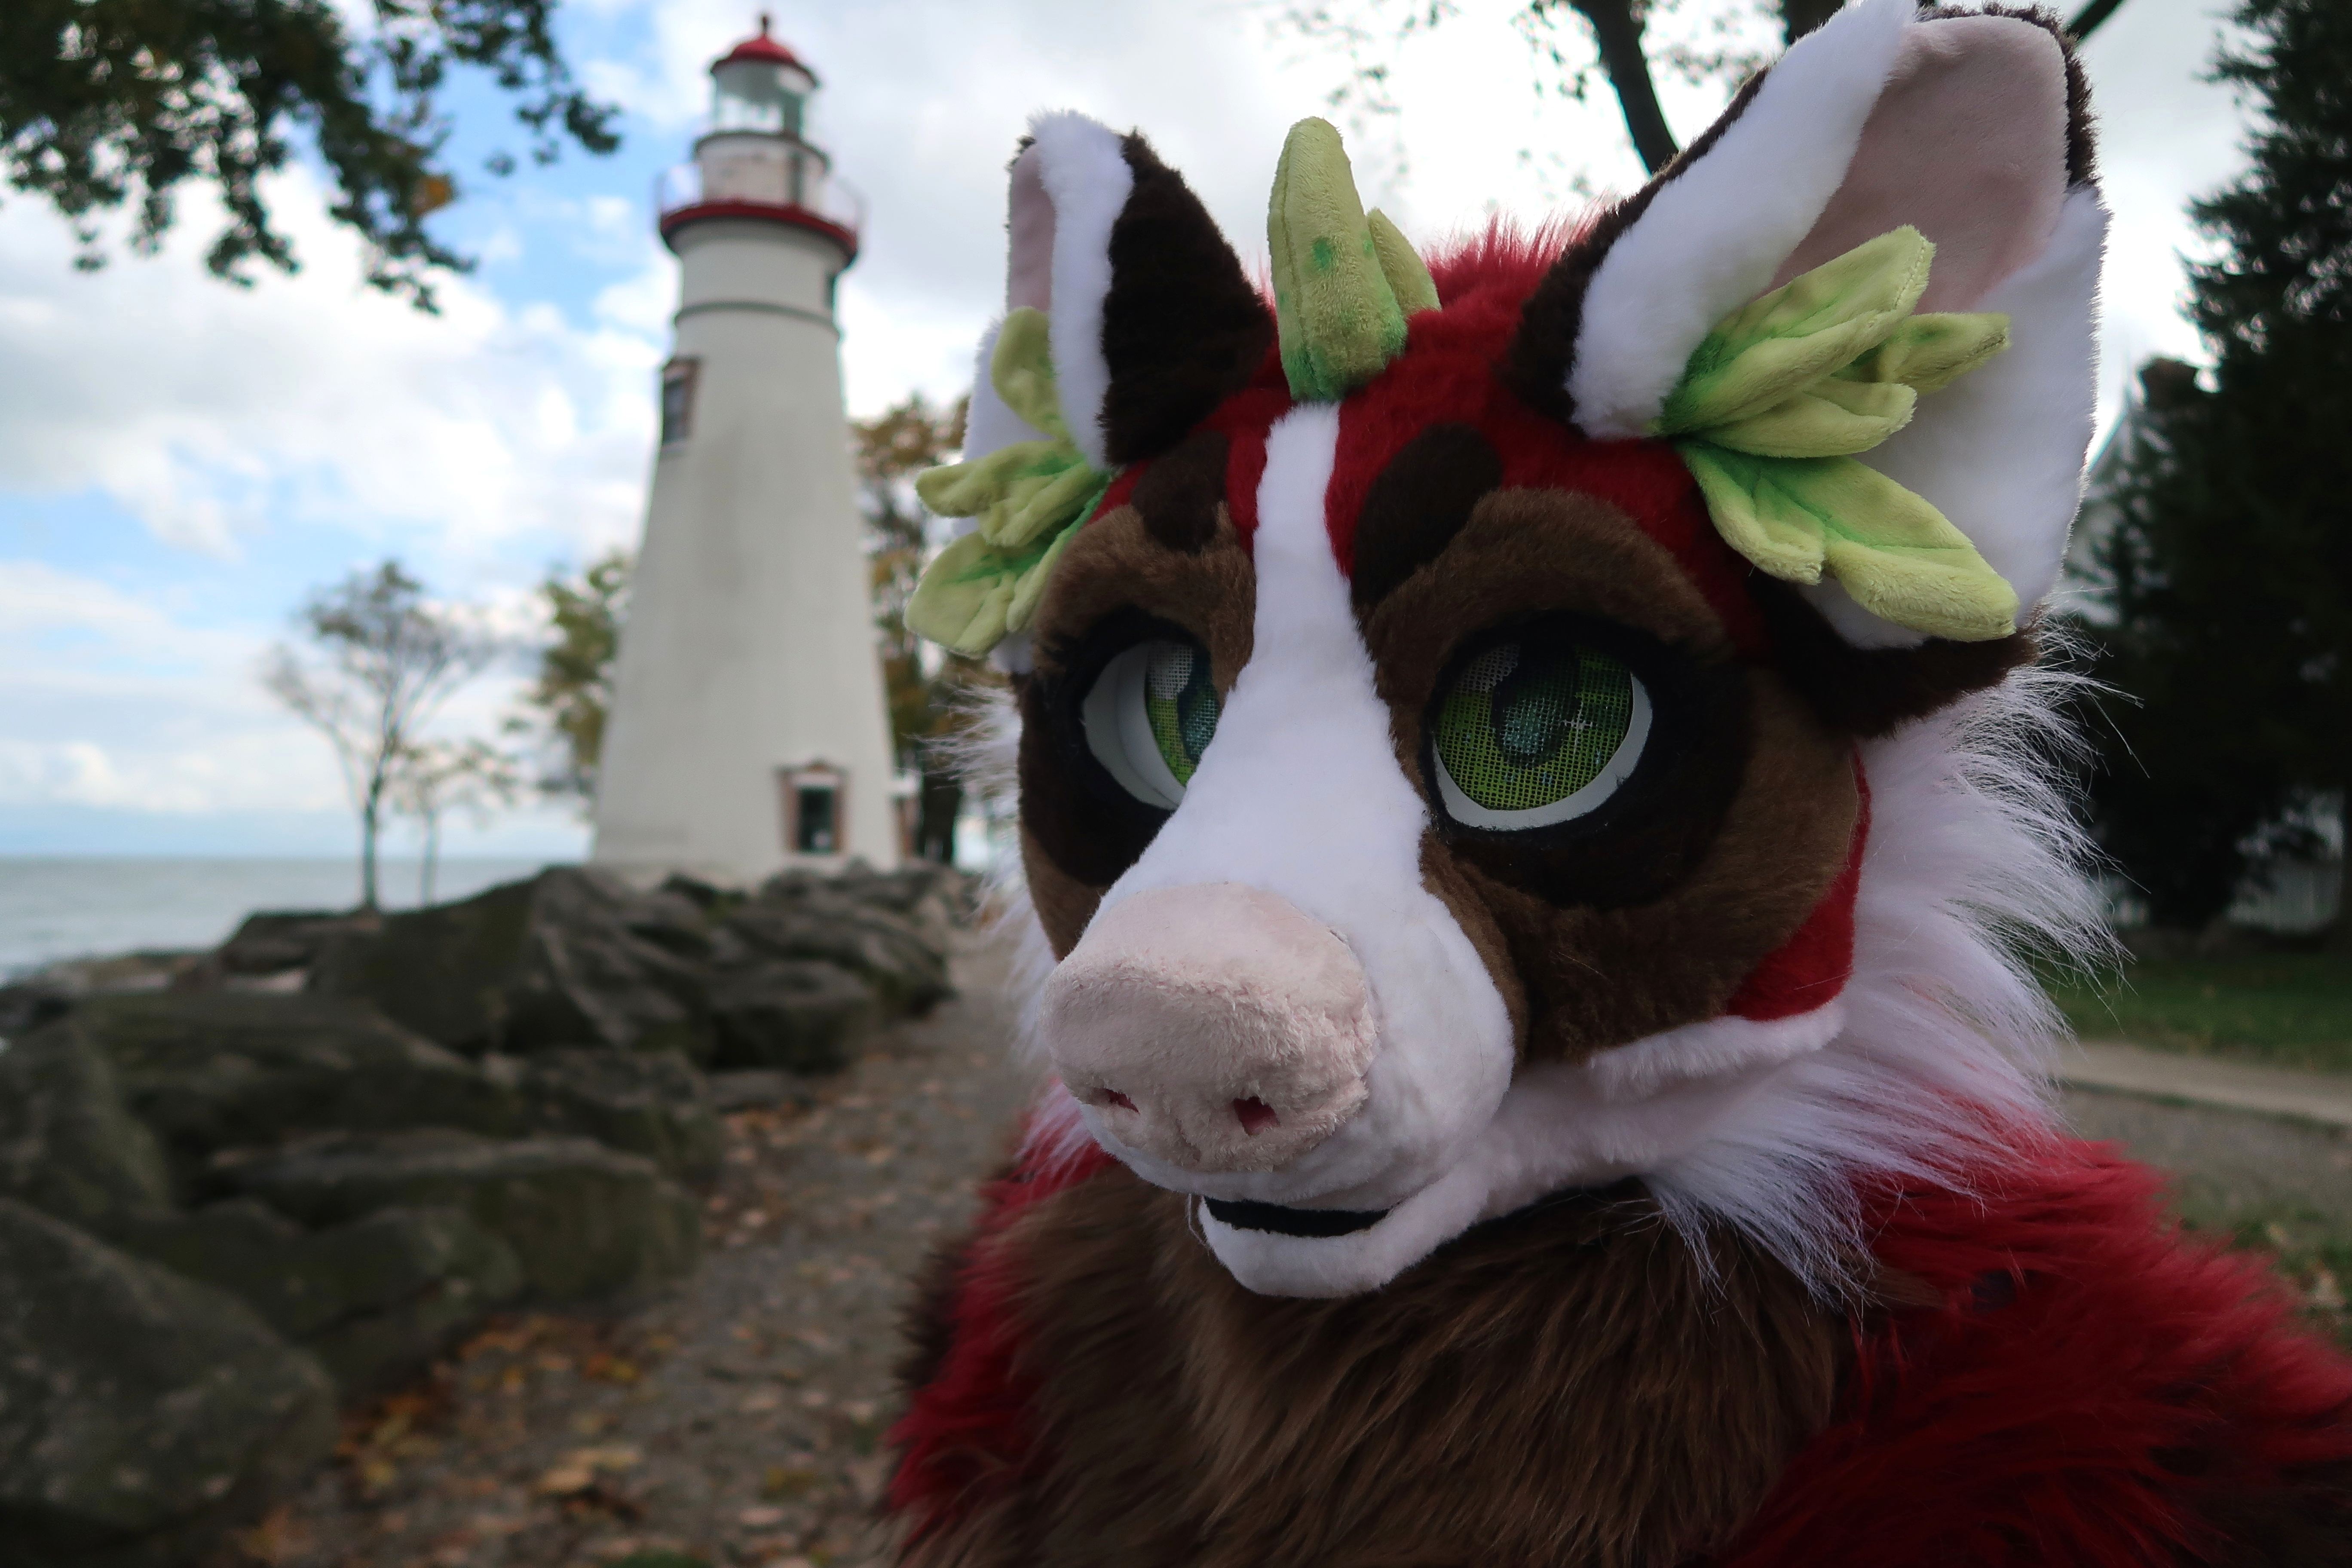 Marblehead, Ohio - With Lighthouse on Side. Shandra Dragon and Connor Goodwolf